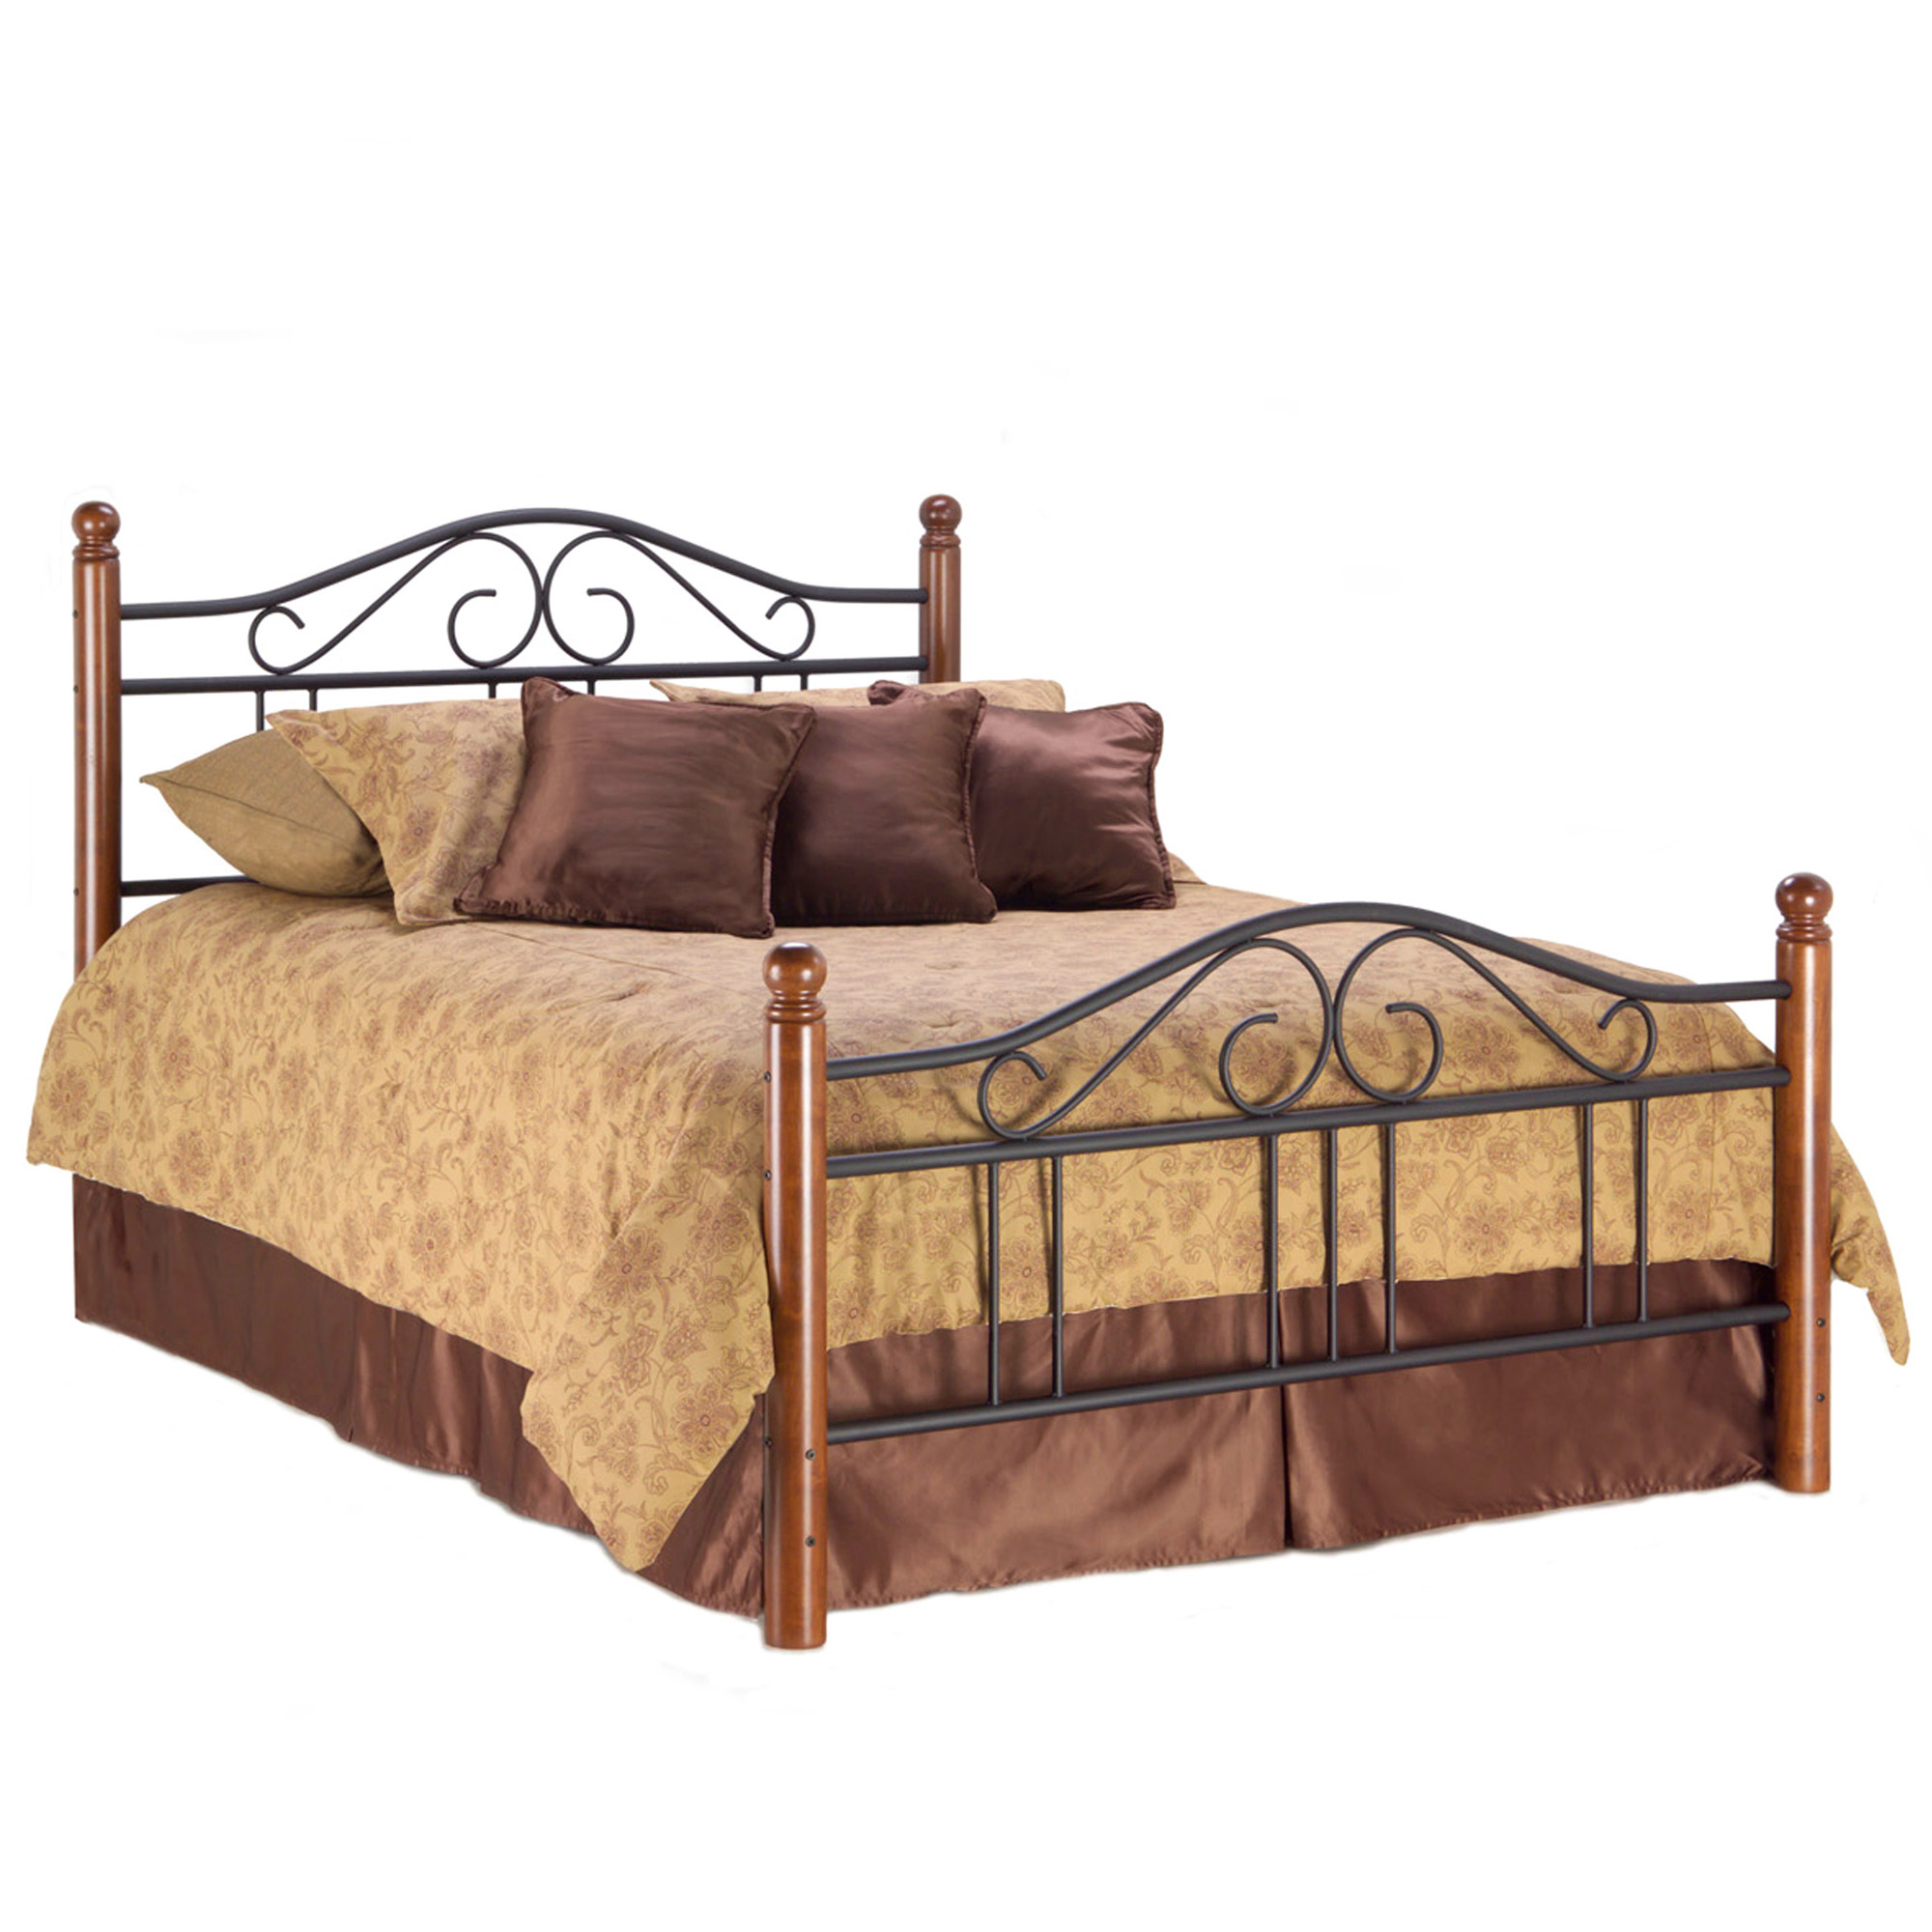 Weston Iron amp Wood Bed Matte BlackMaple South West Style